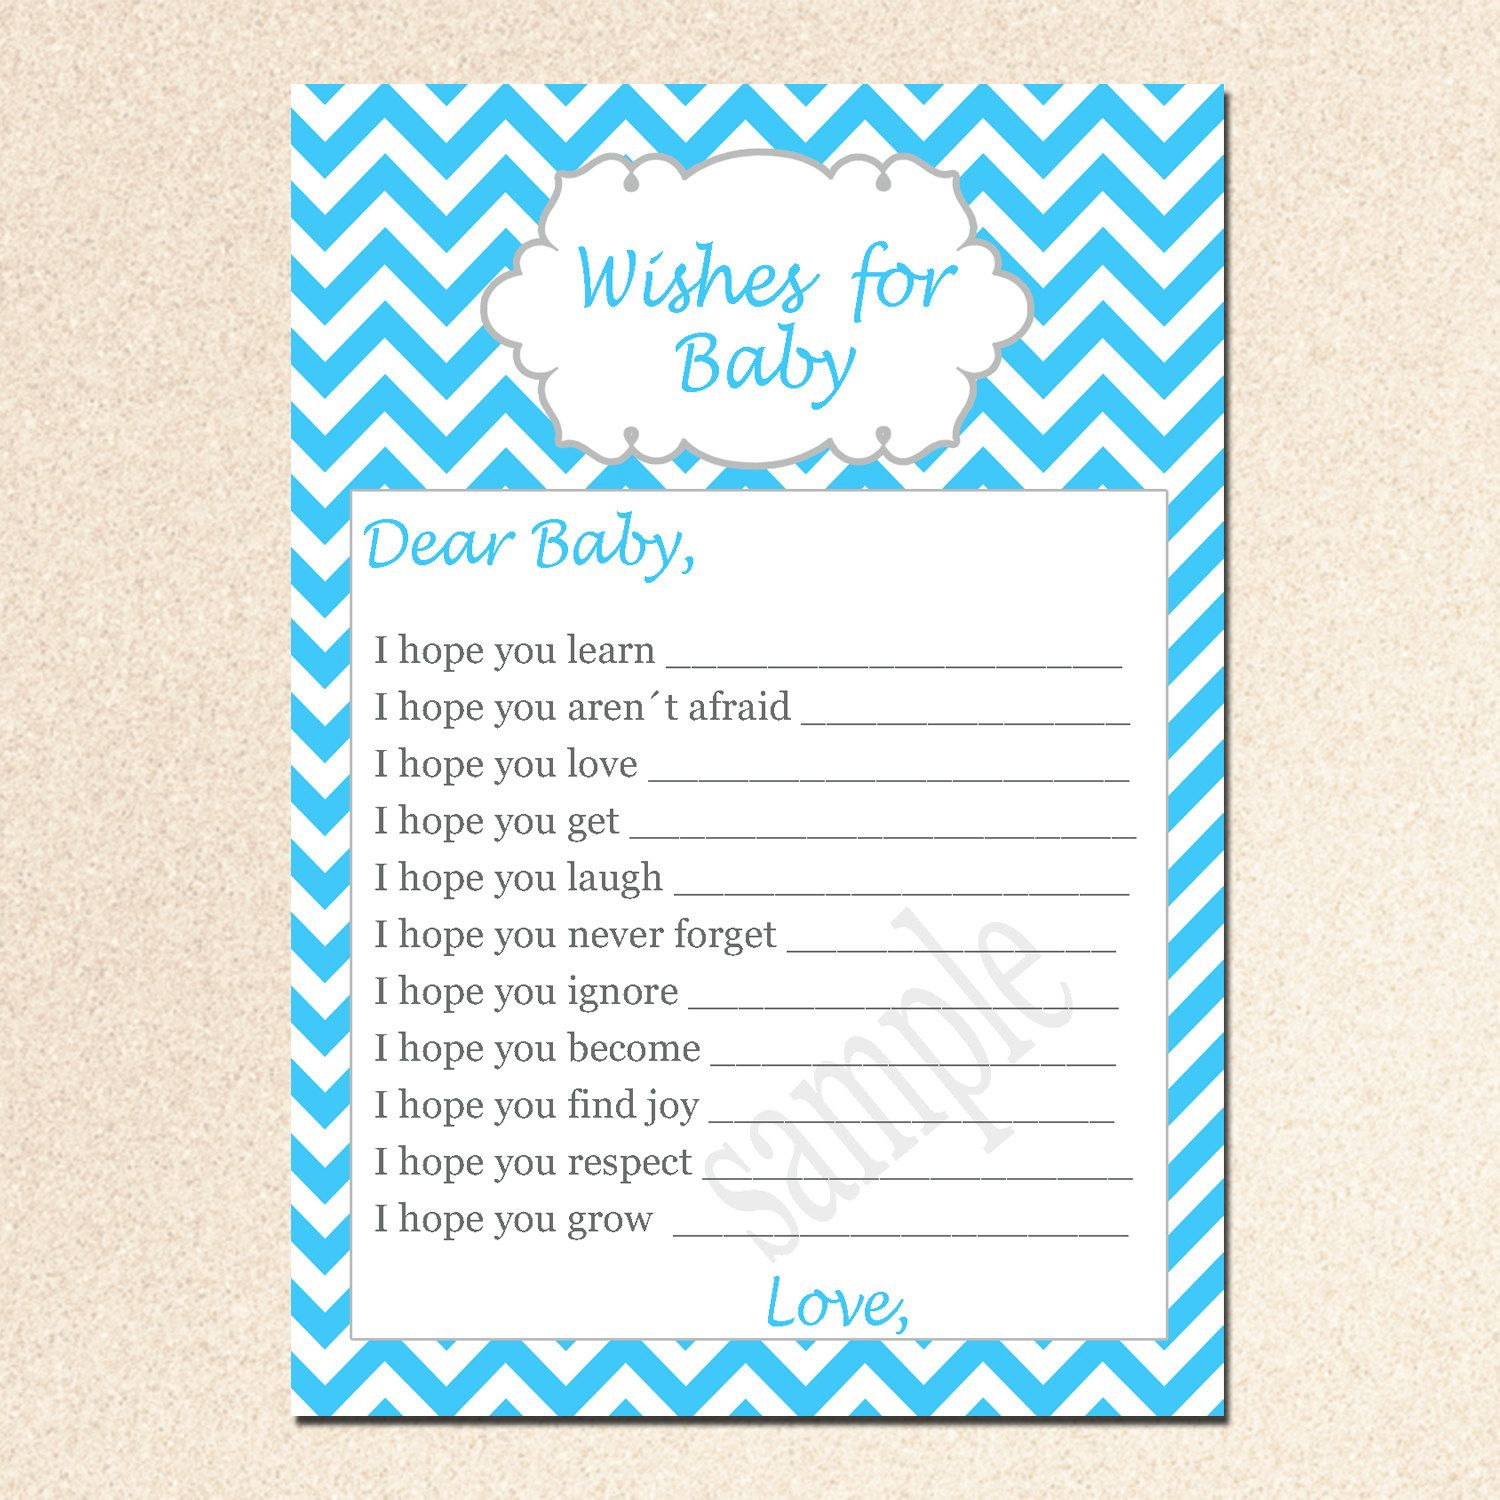 Wishesforbaby printable chevron wishes for baby card baby wishesforbaby printable chevron wishes for baby card baby shower boy kristyandbryce Image collections